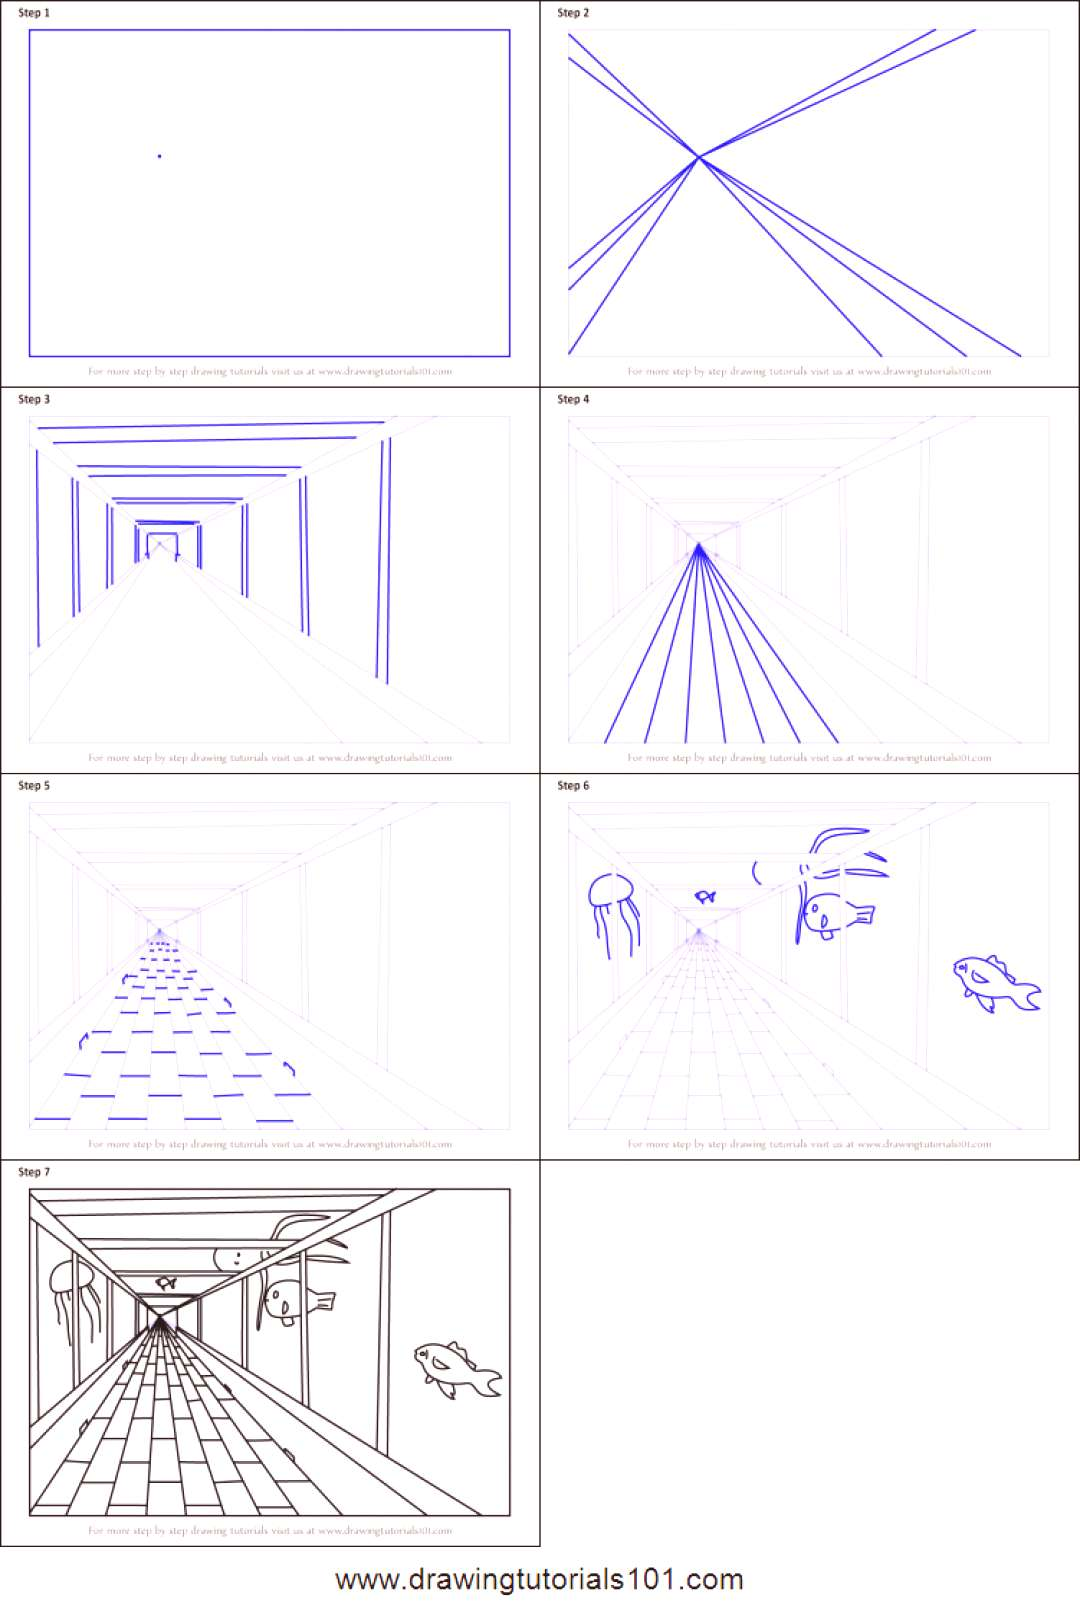 How to Draw One Point Perspective Aquarium printable step by step drawing sheet